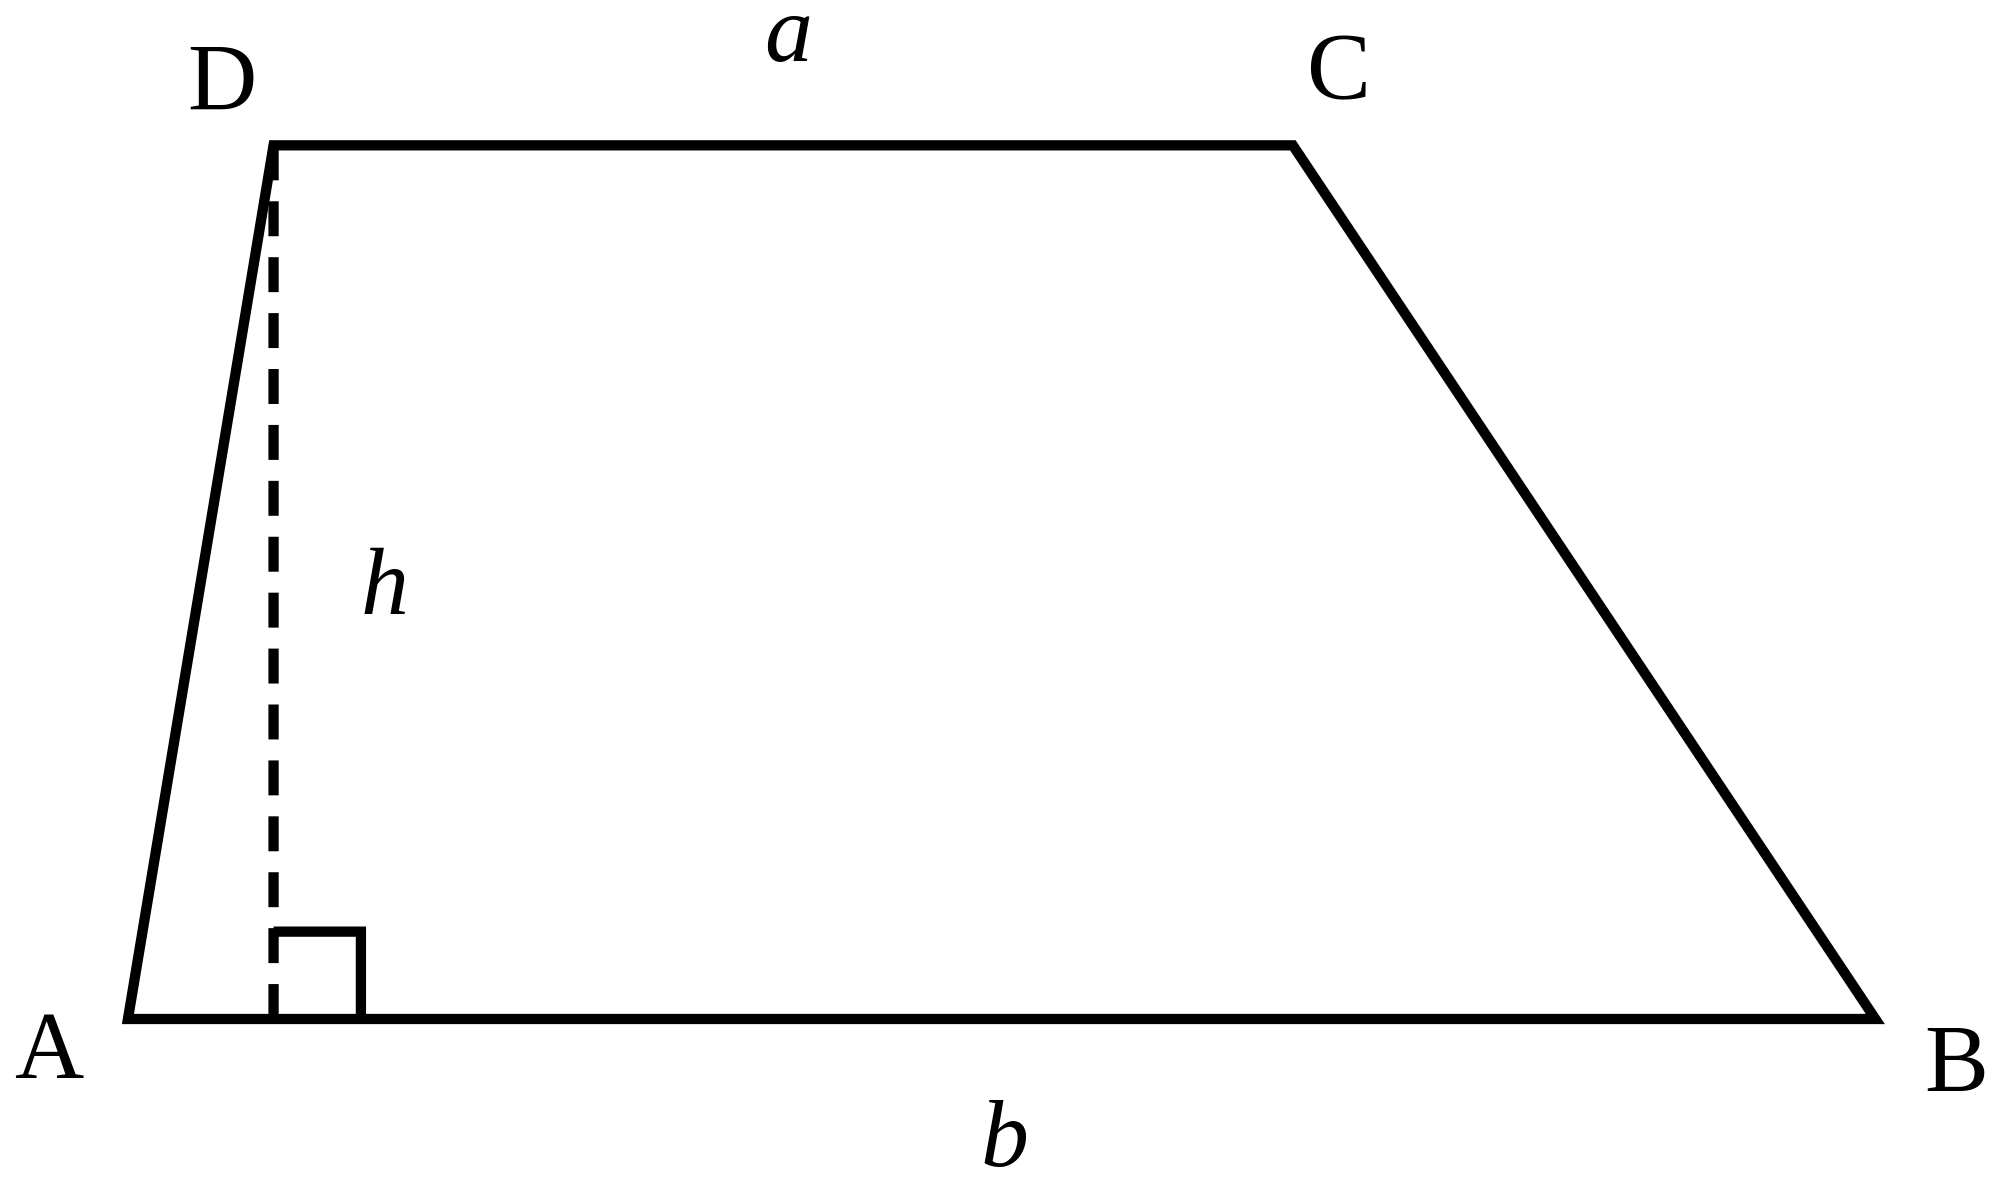 Trapezoid s png. File svg wikimedia commons